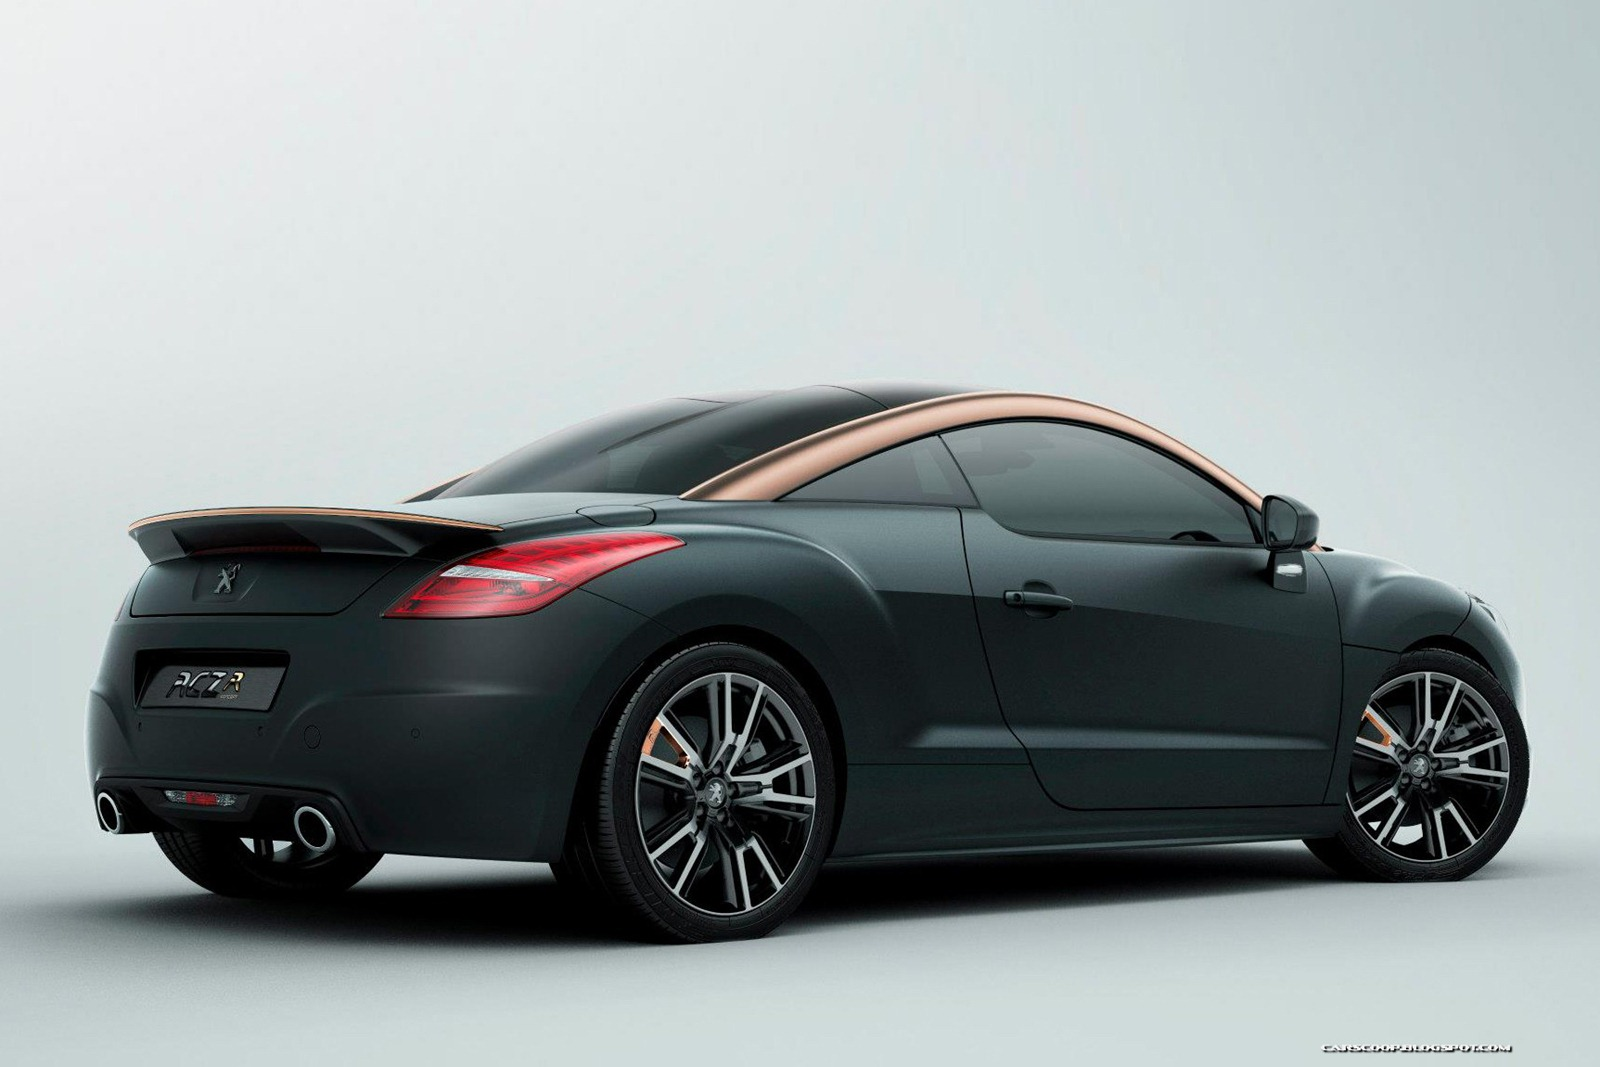 nuevo peugeot rcz y rcz r concept auto blog. Black Bedroom Furniture Sets. Home Design Ideas